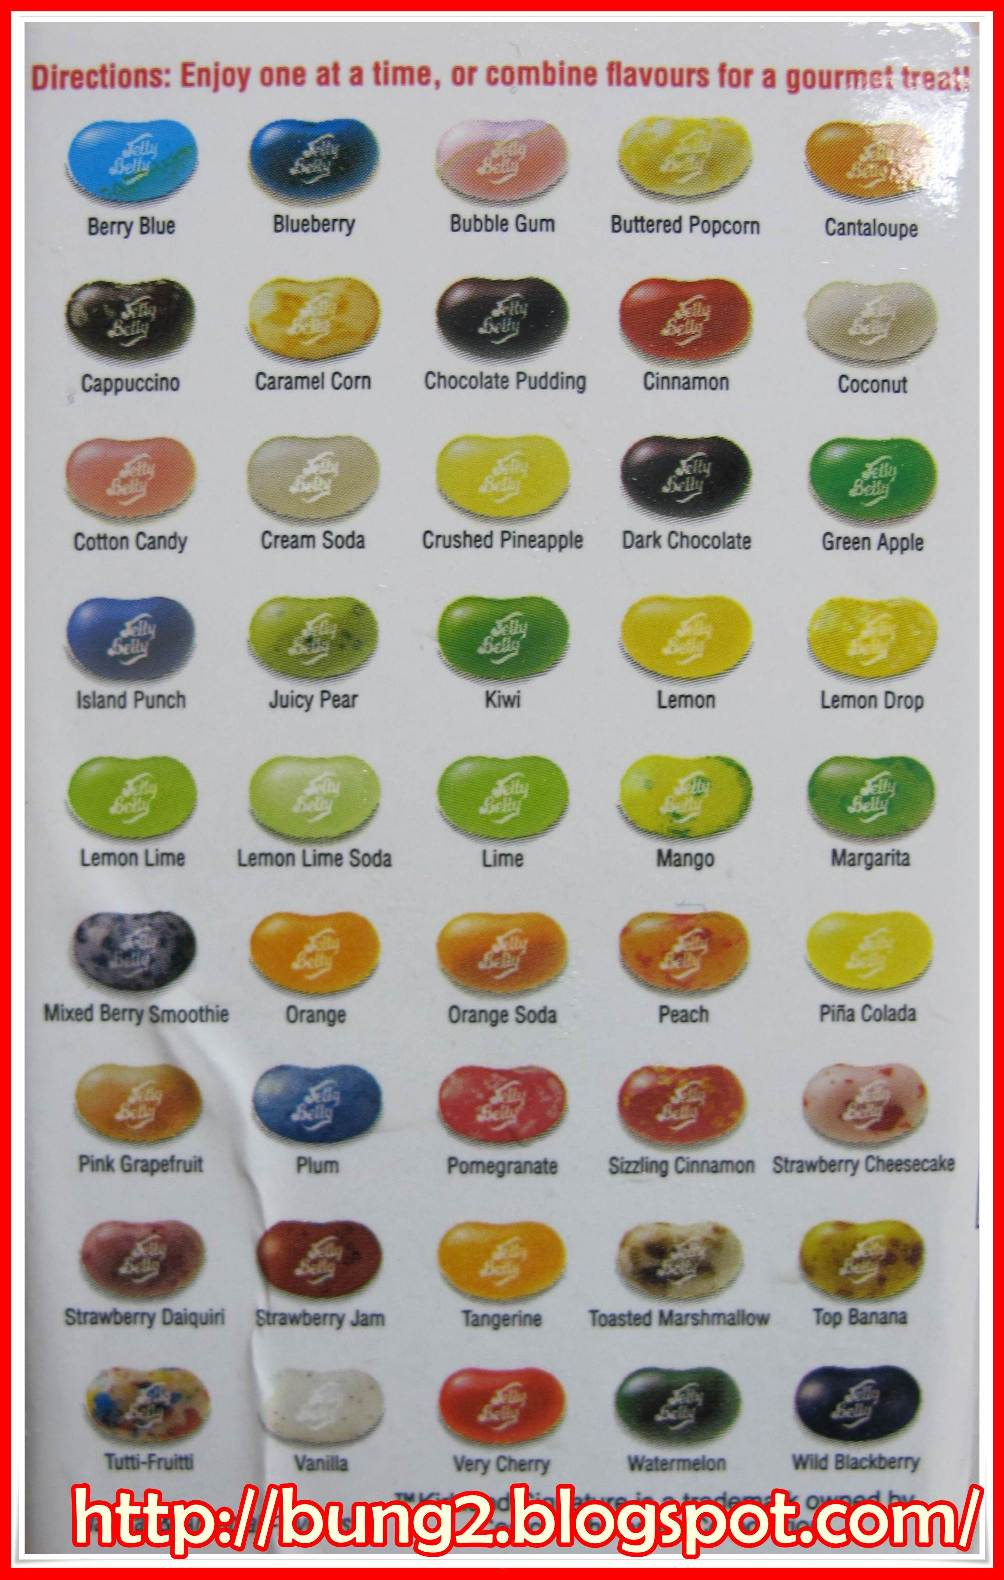 Jelly beans flavors